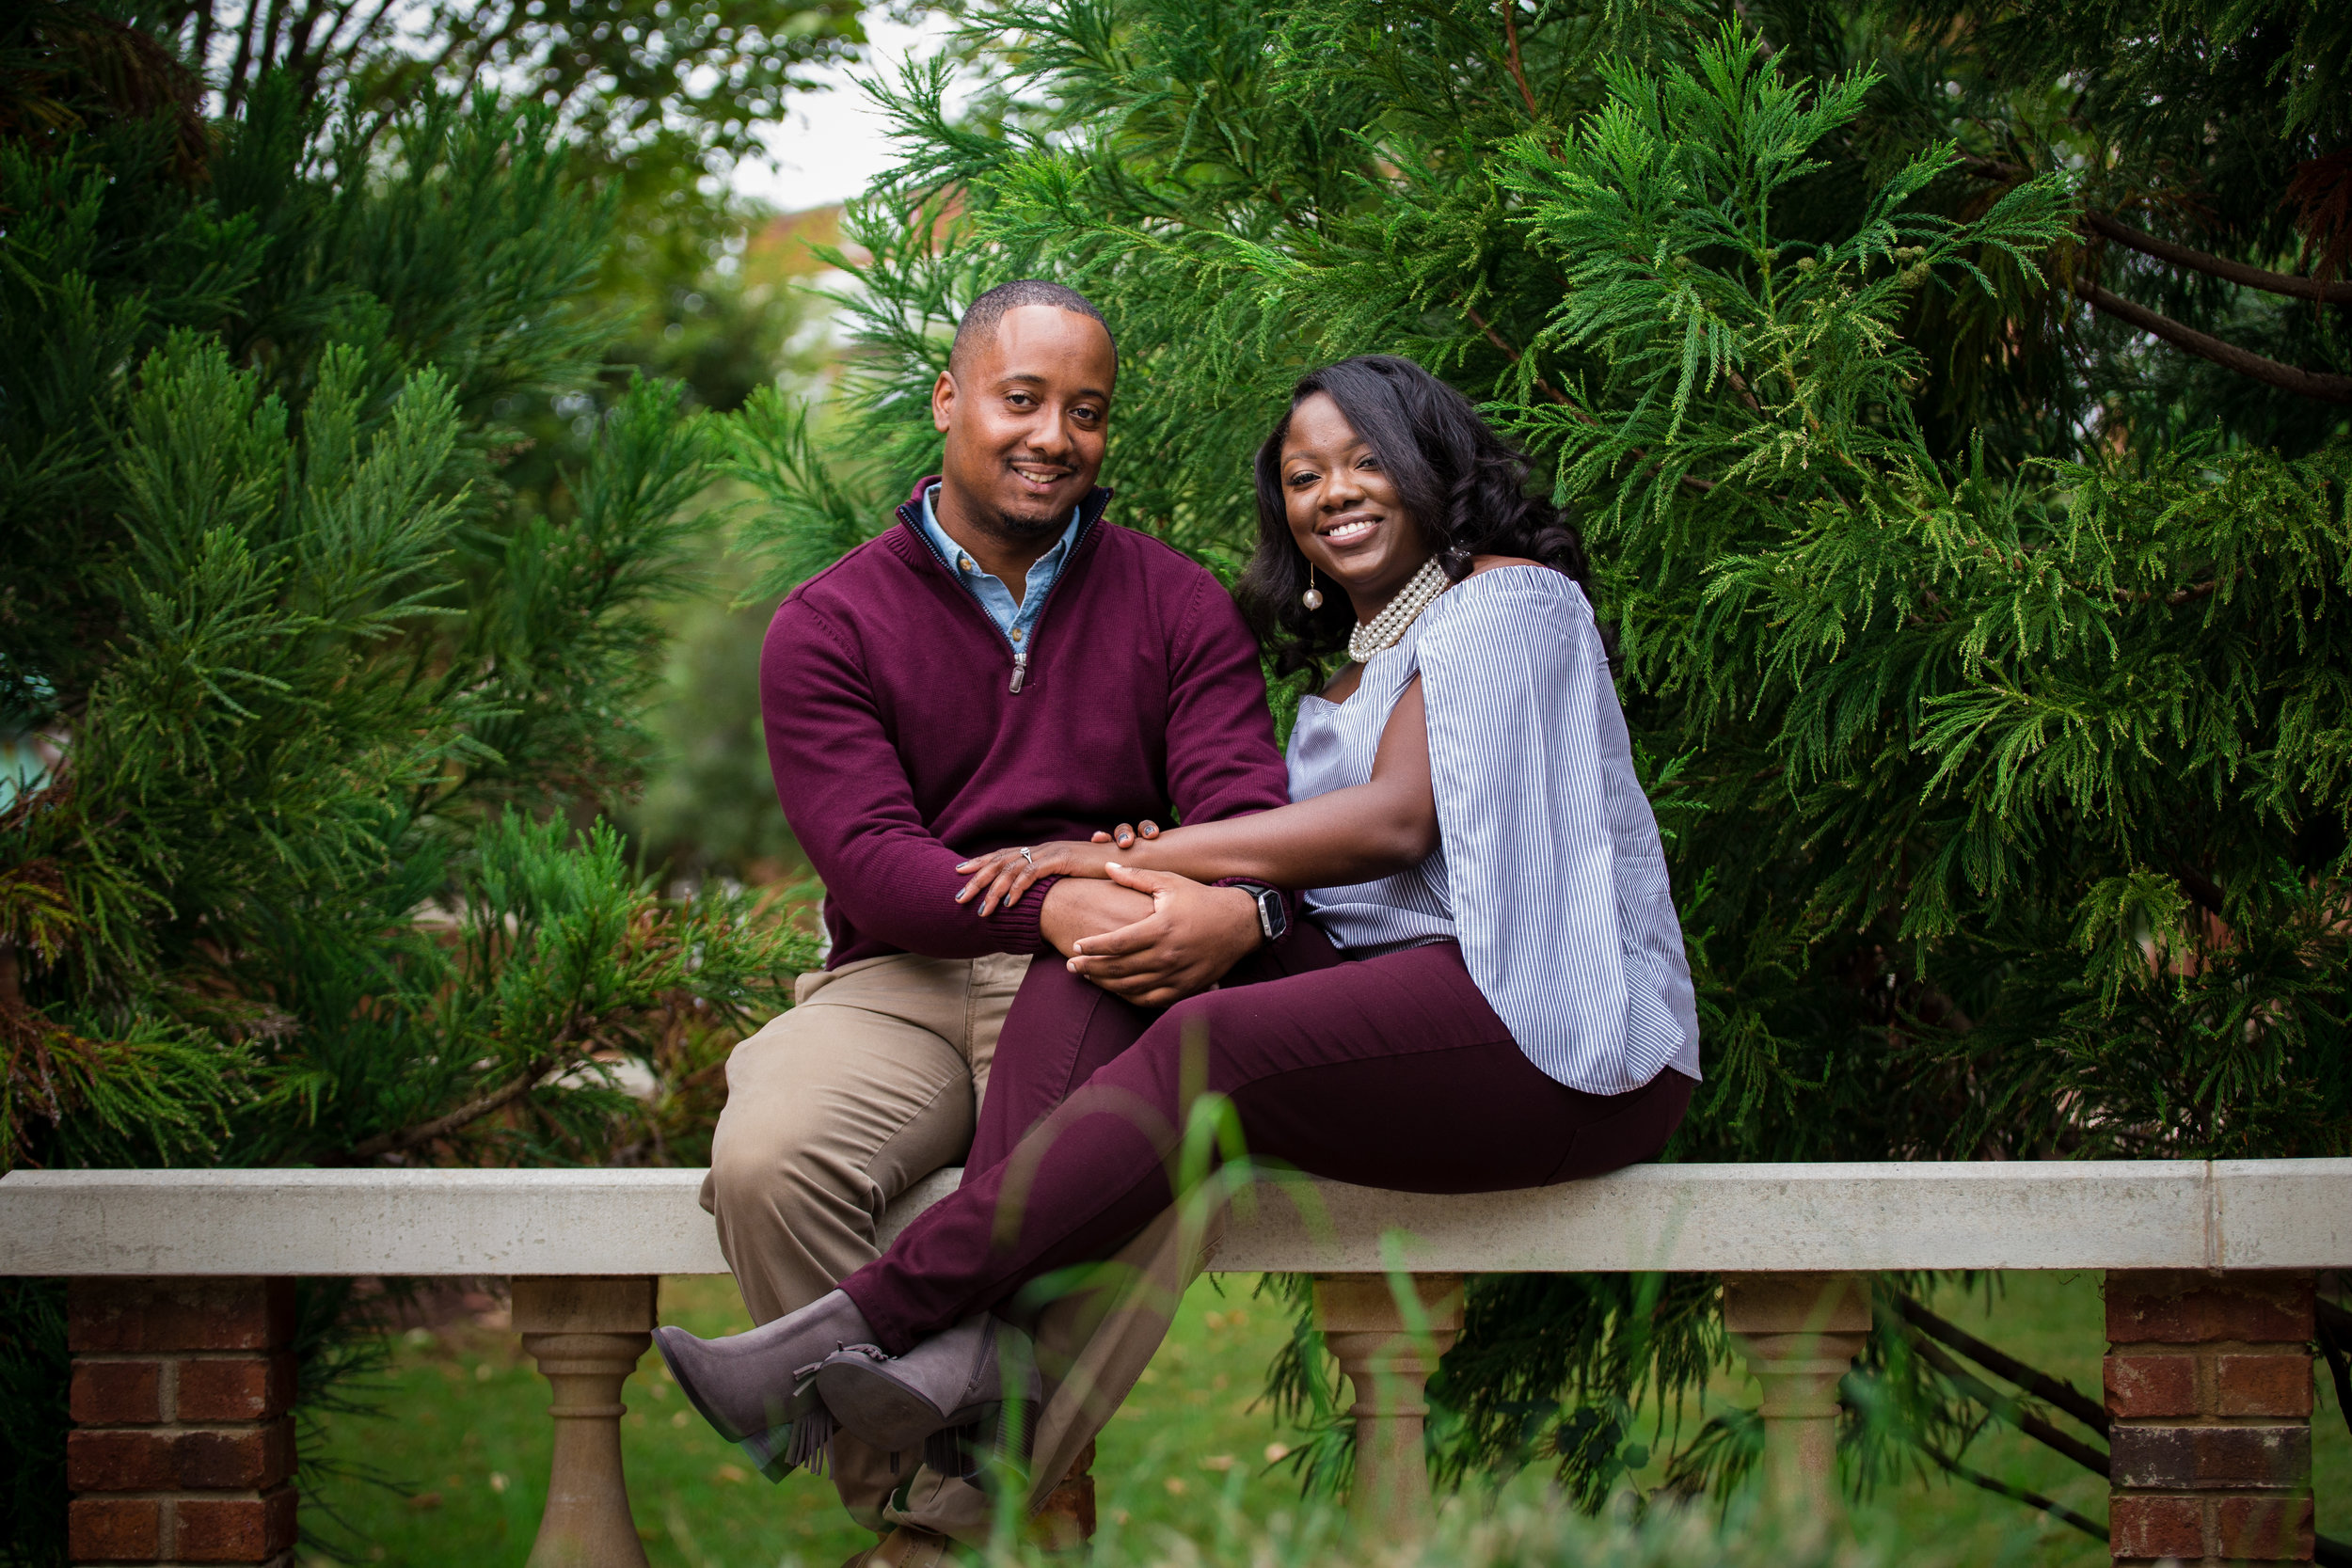 Caldwell/Cunningham Engagement Session - Oct 14, 2017